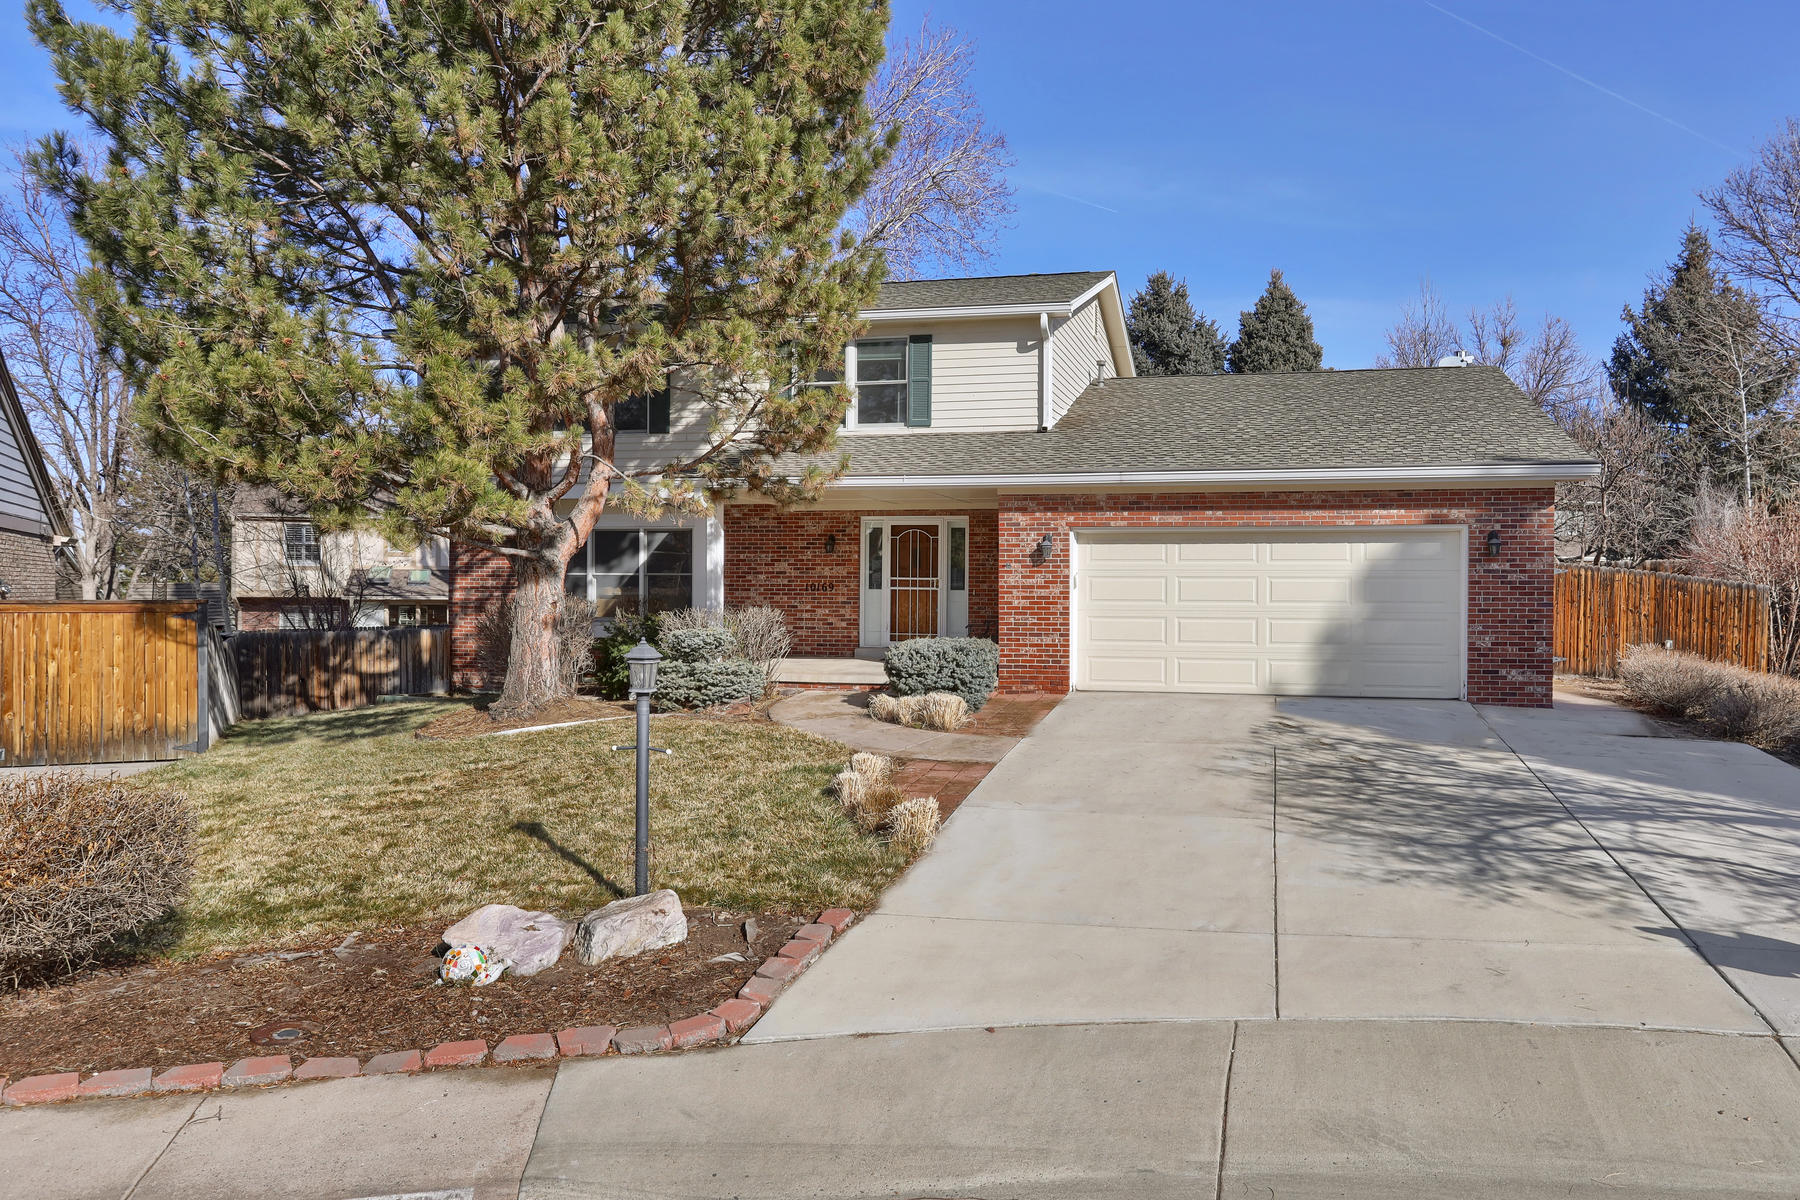 Casa unifamiliar en venta en/de 10169 E Lake Place, Englewood, Colorado ,80111  , EUA